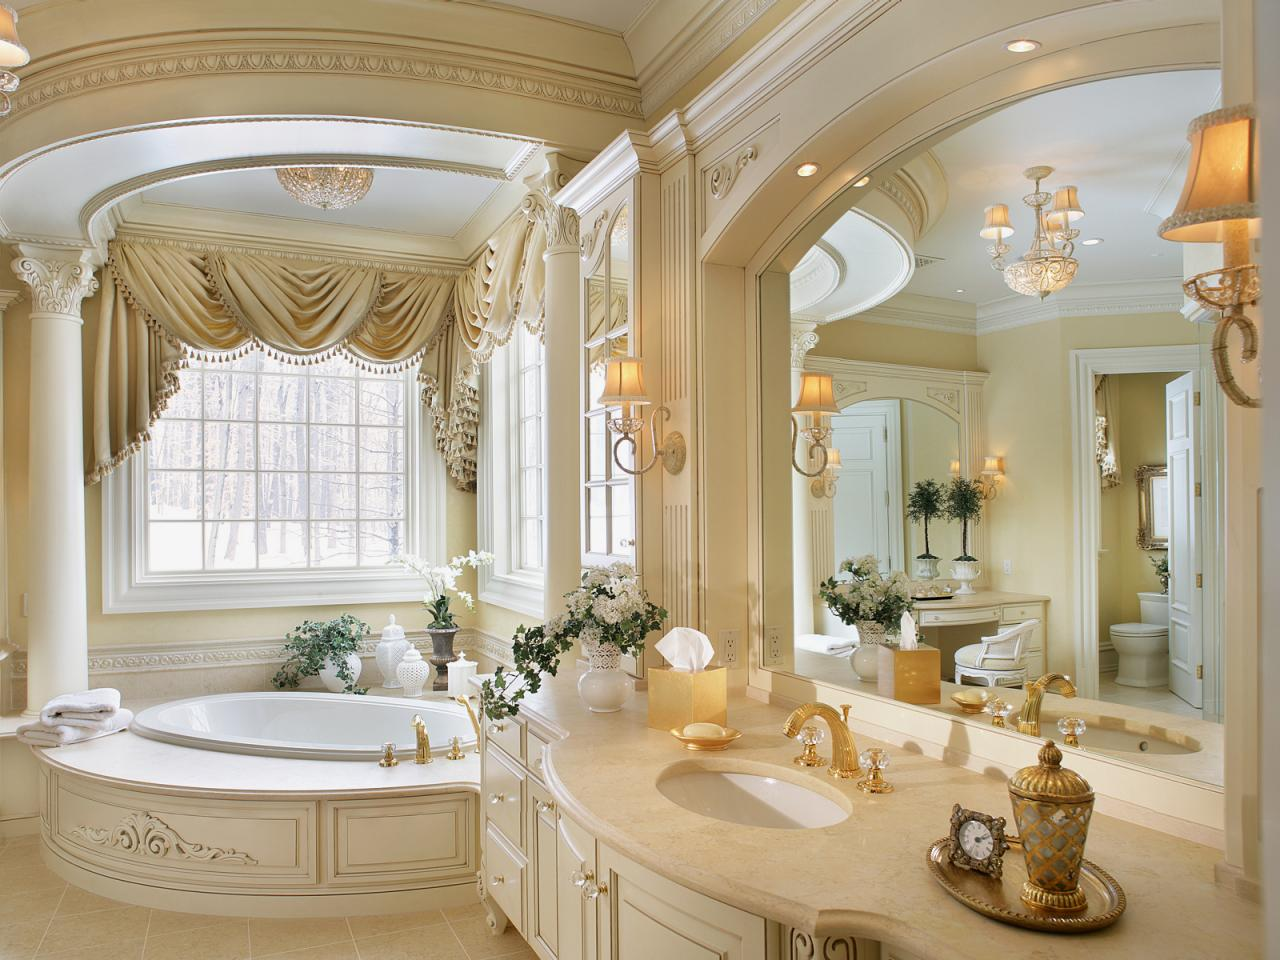 Spacious bathroom in white and gold